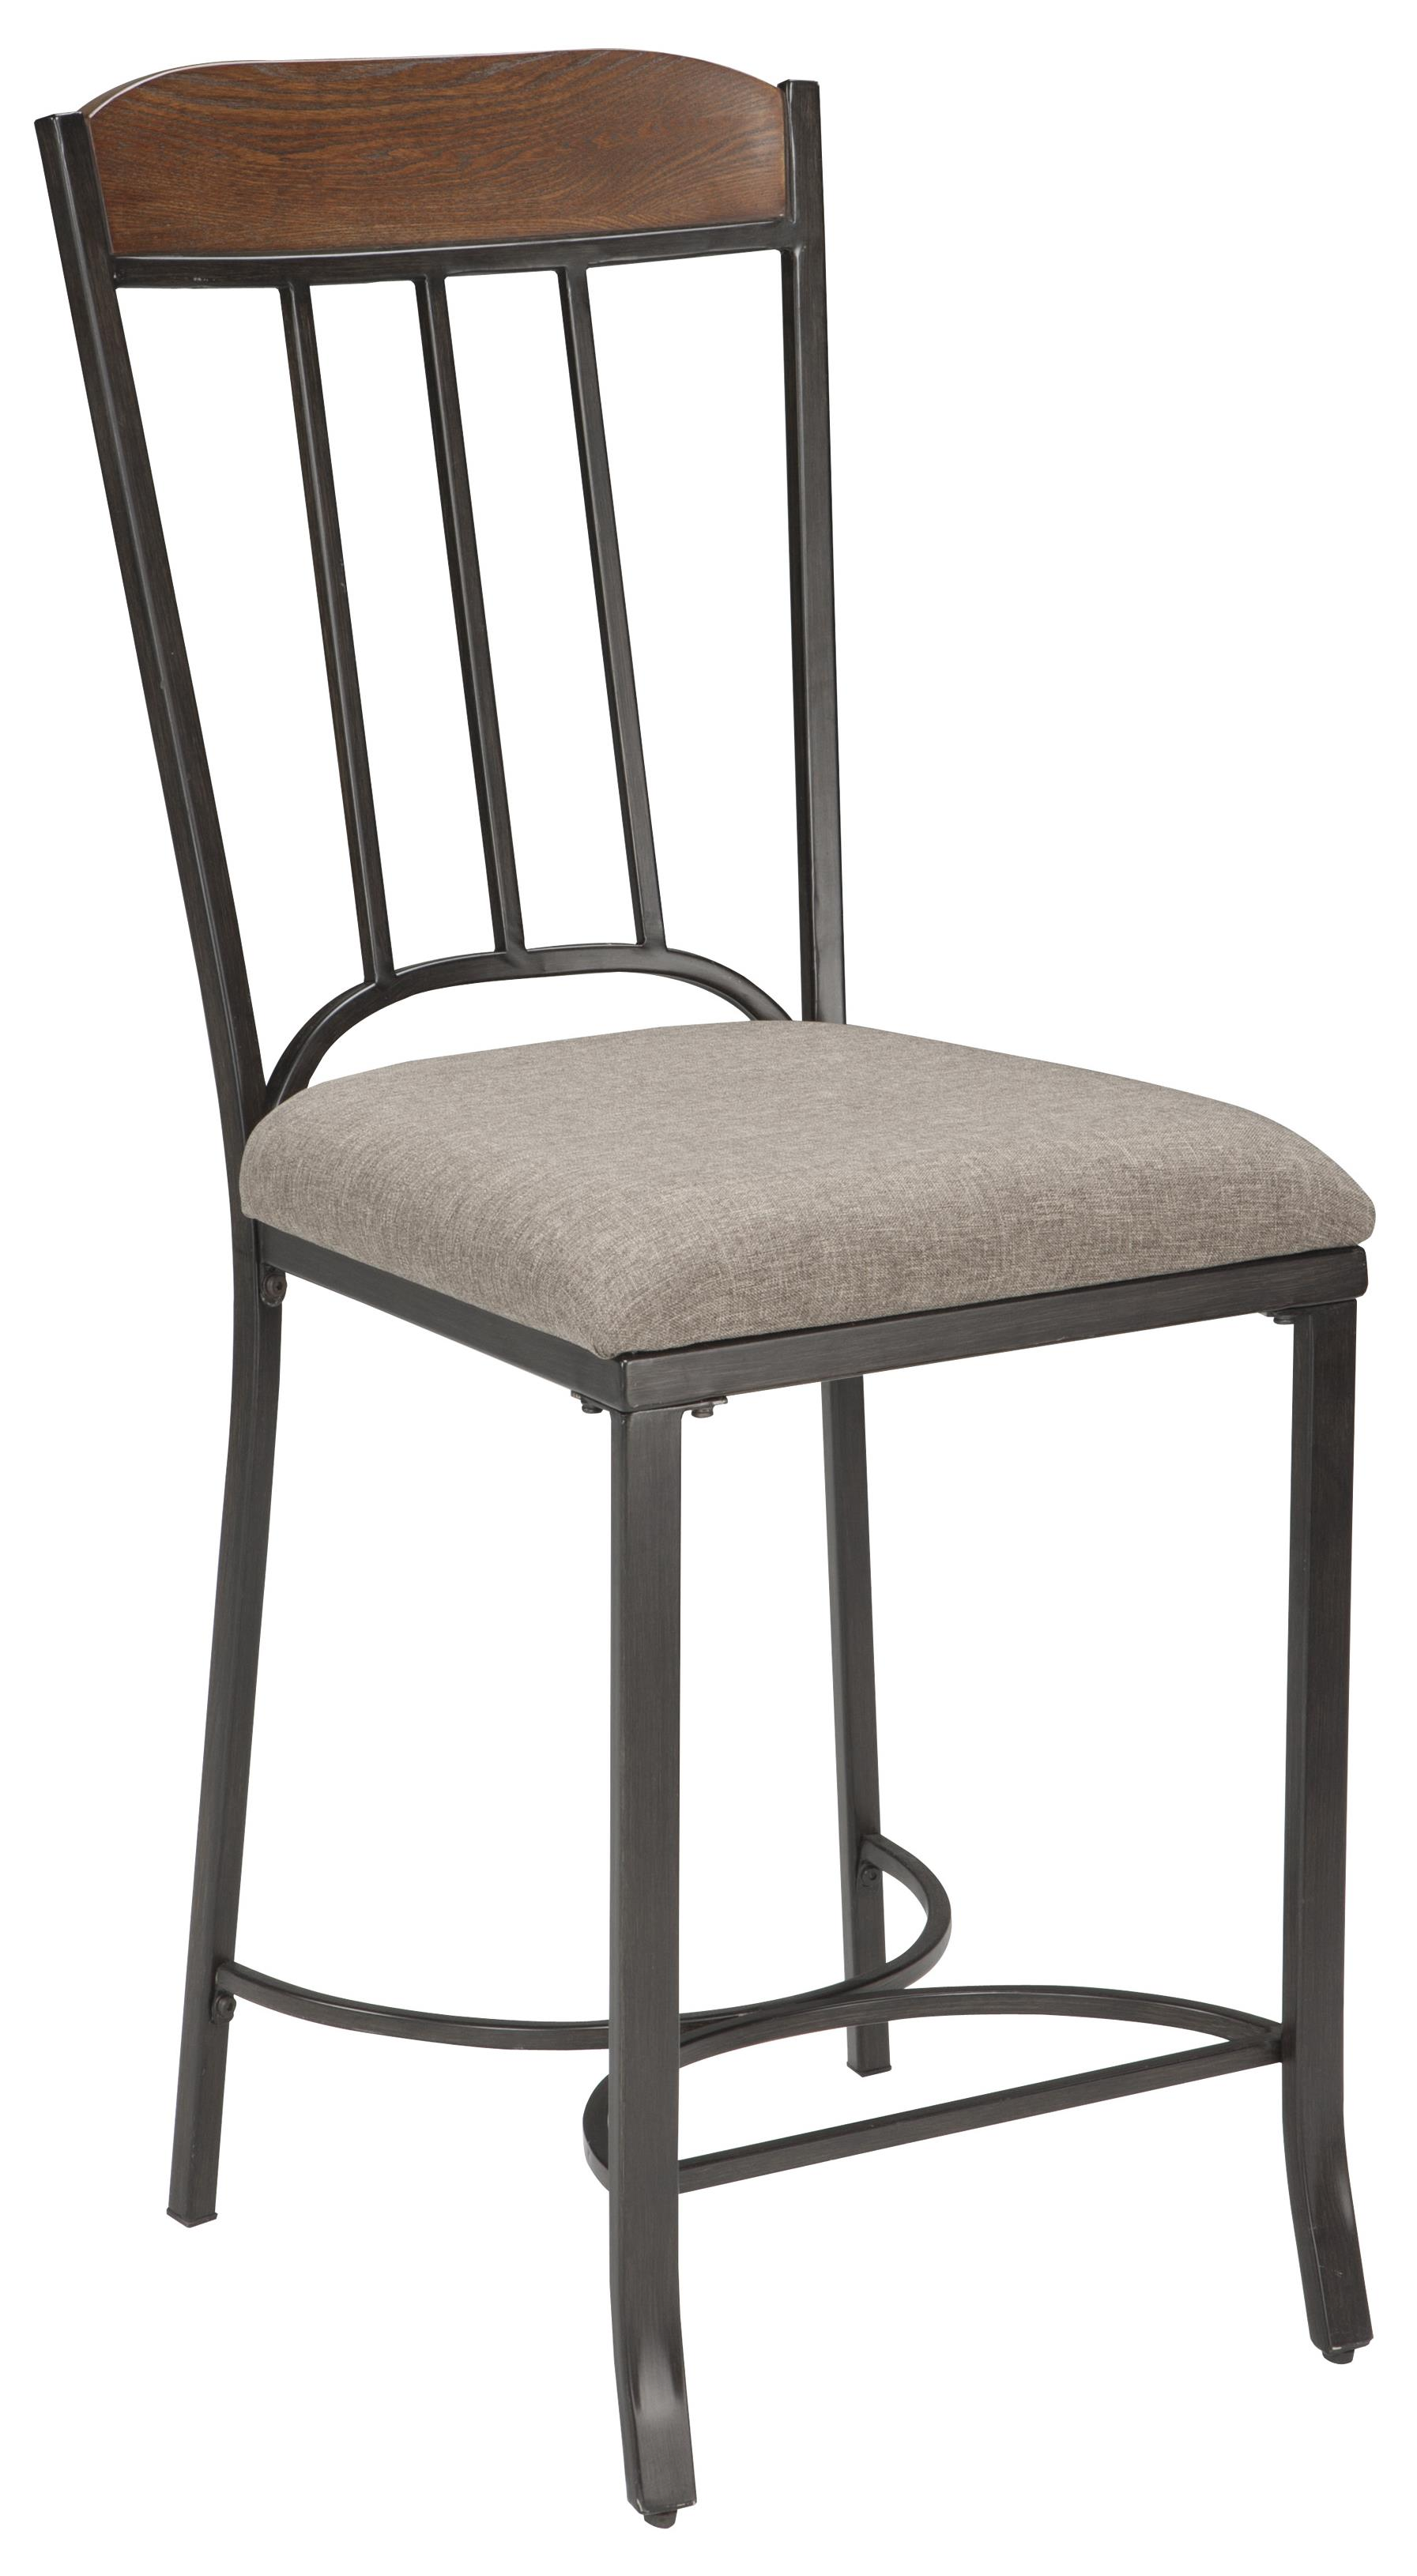 Signature Design by Ashley Zanilly Upholstered Barstool - Item Number: D507-124